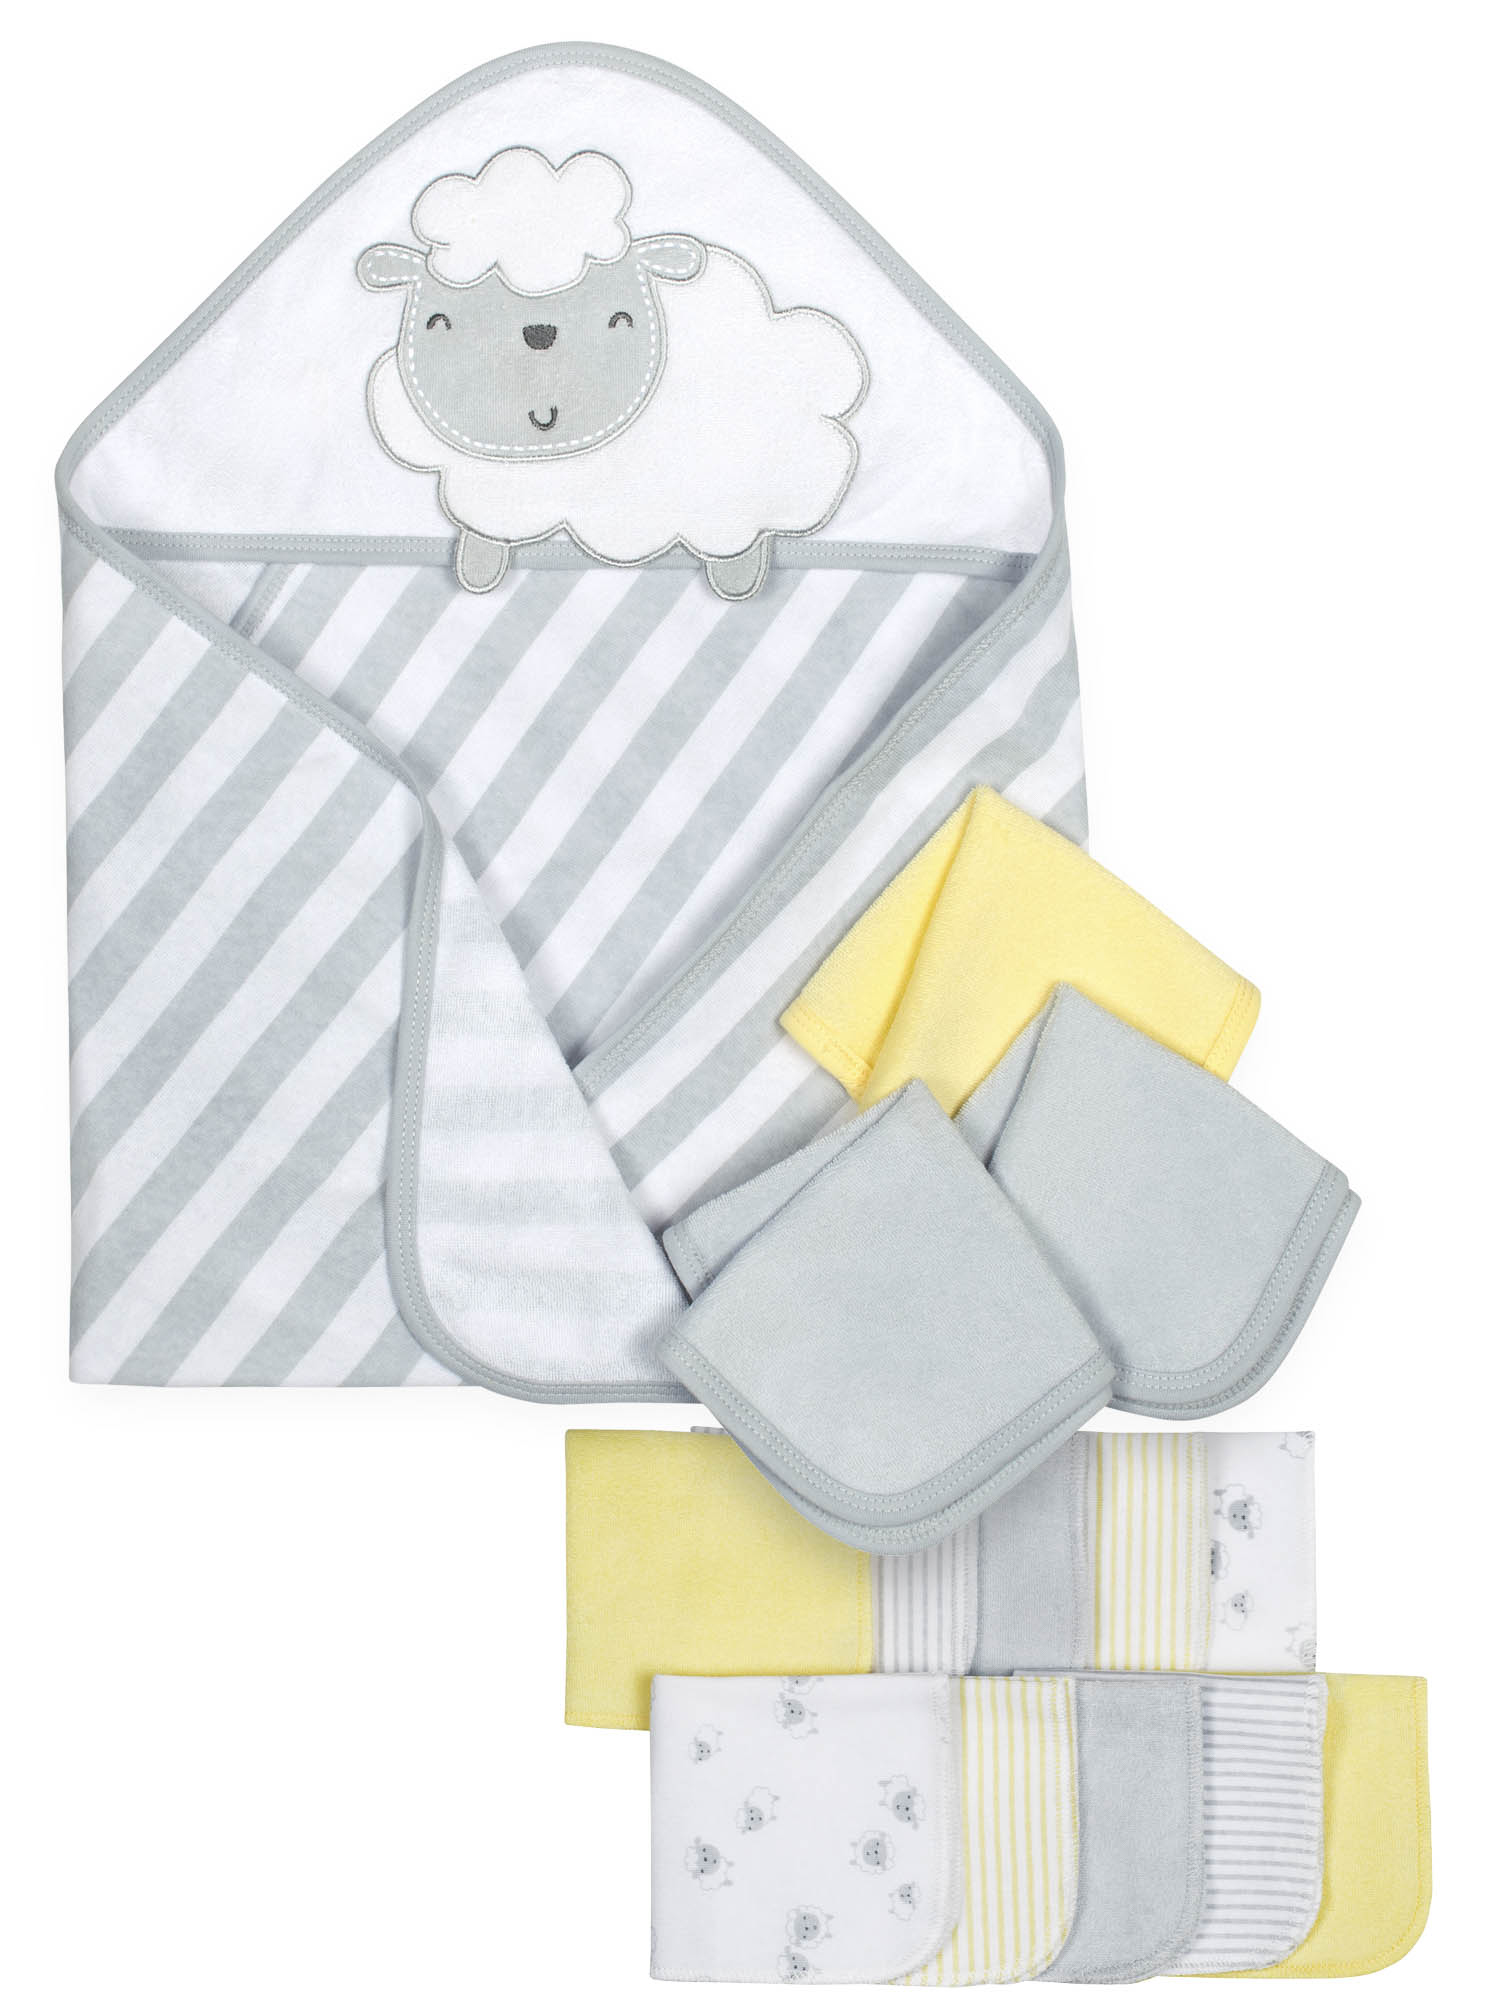 Gerber Baby Hooded Towels & Washcloth Set, 14pc by Gerber